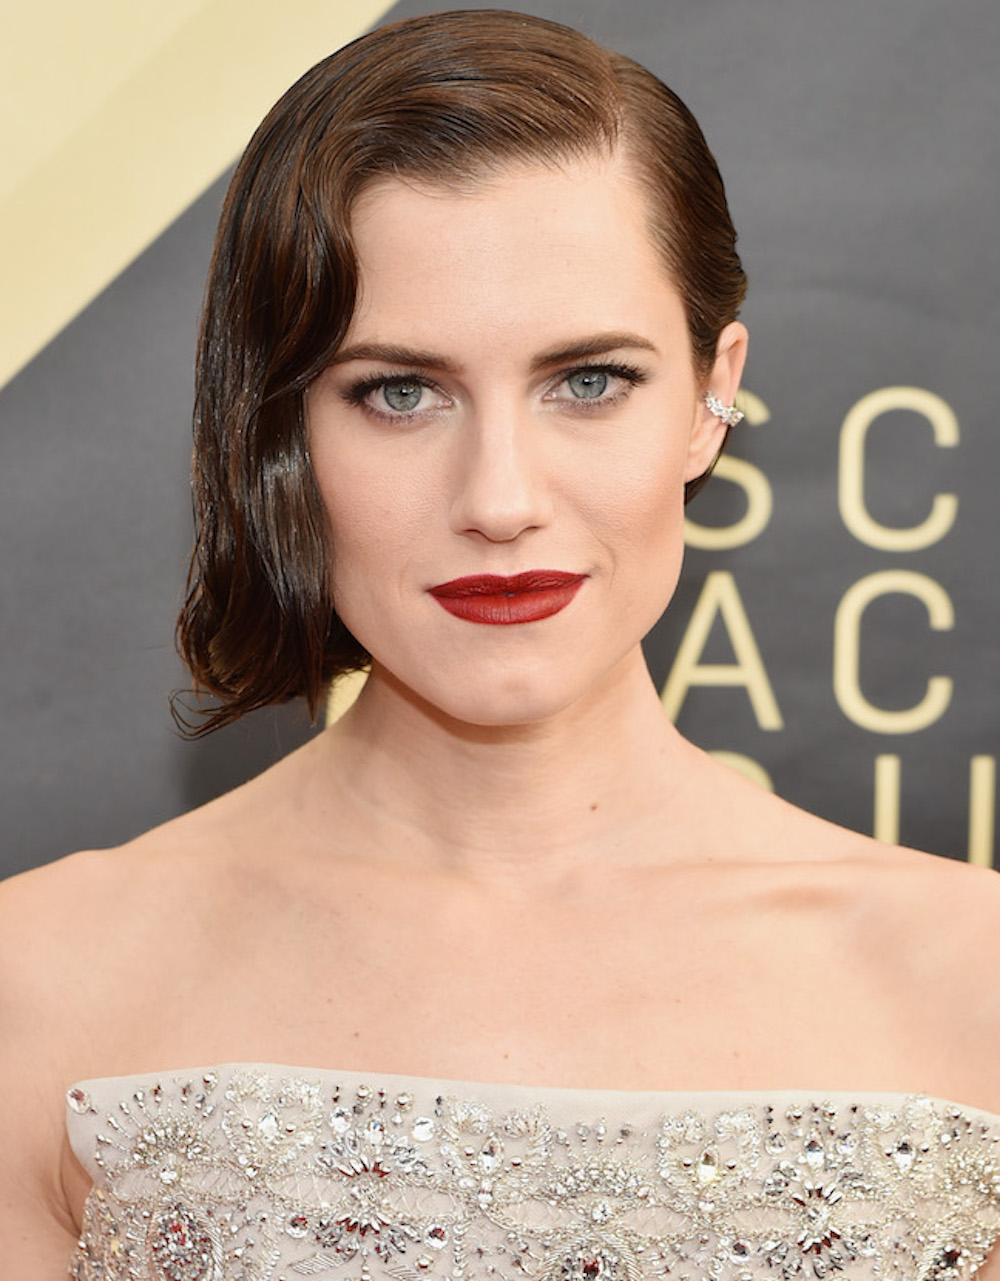 Allison Williams wore a $6 lipstick at the 2018 SAG Awards — here's where to get it